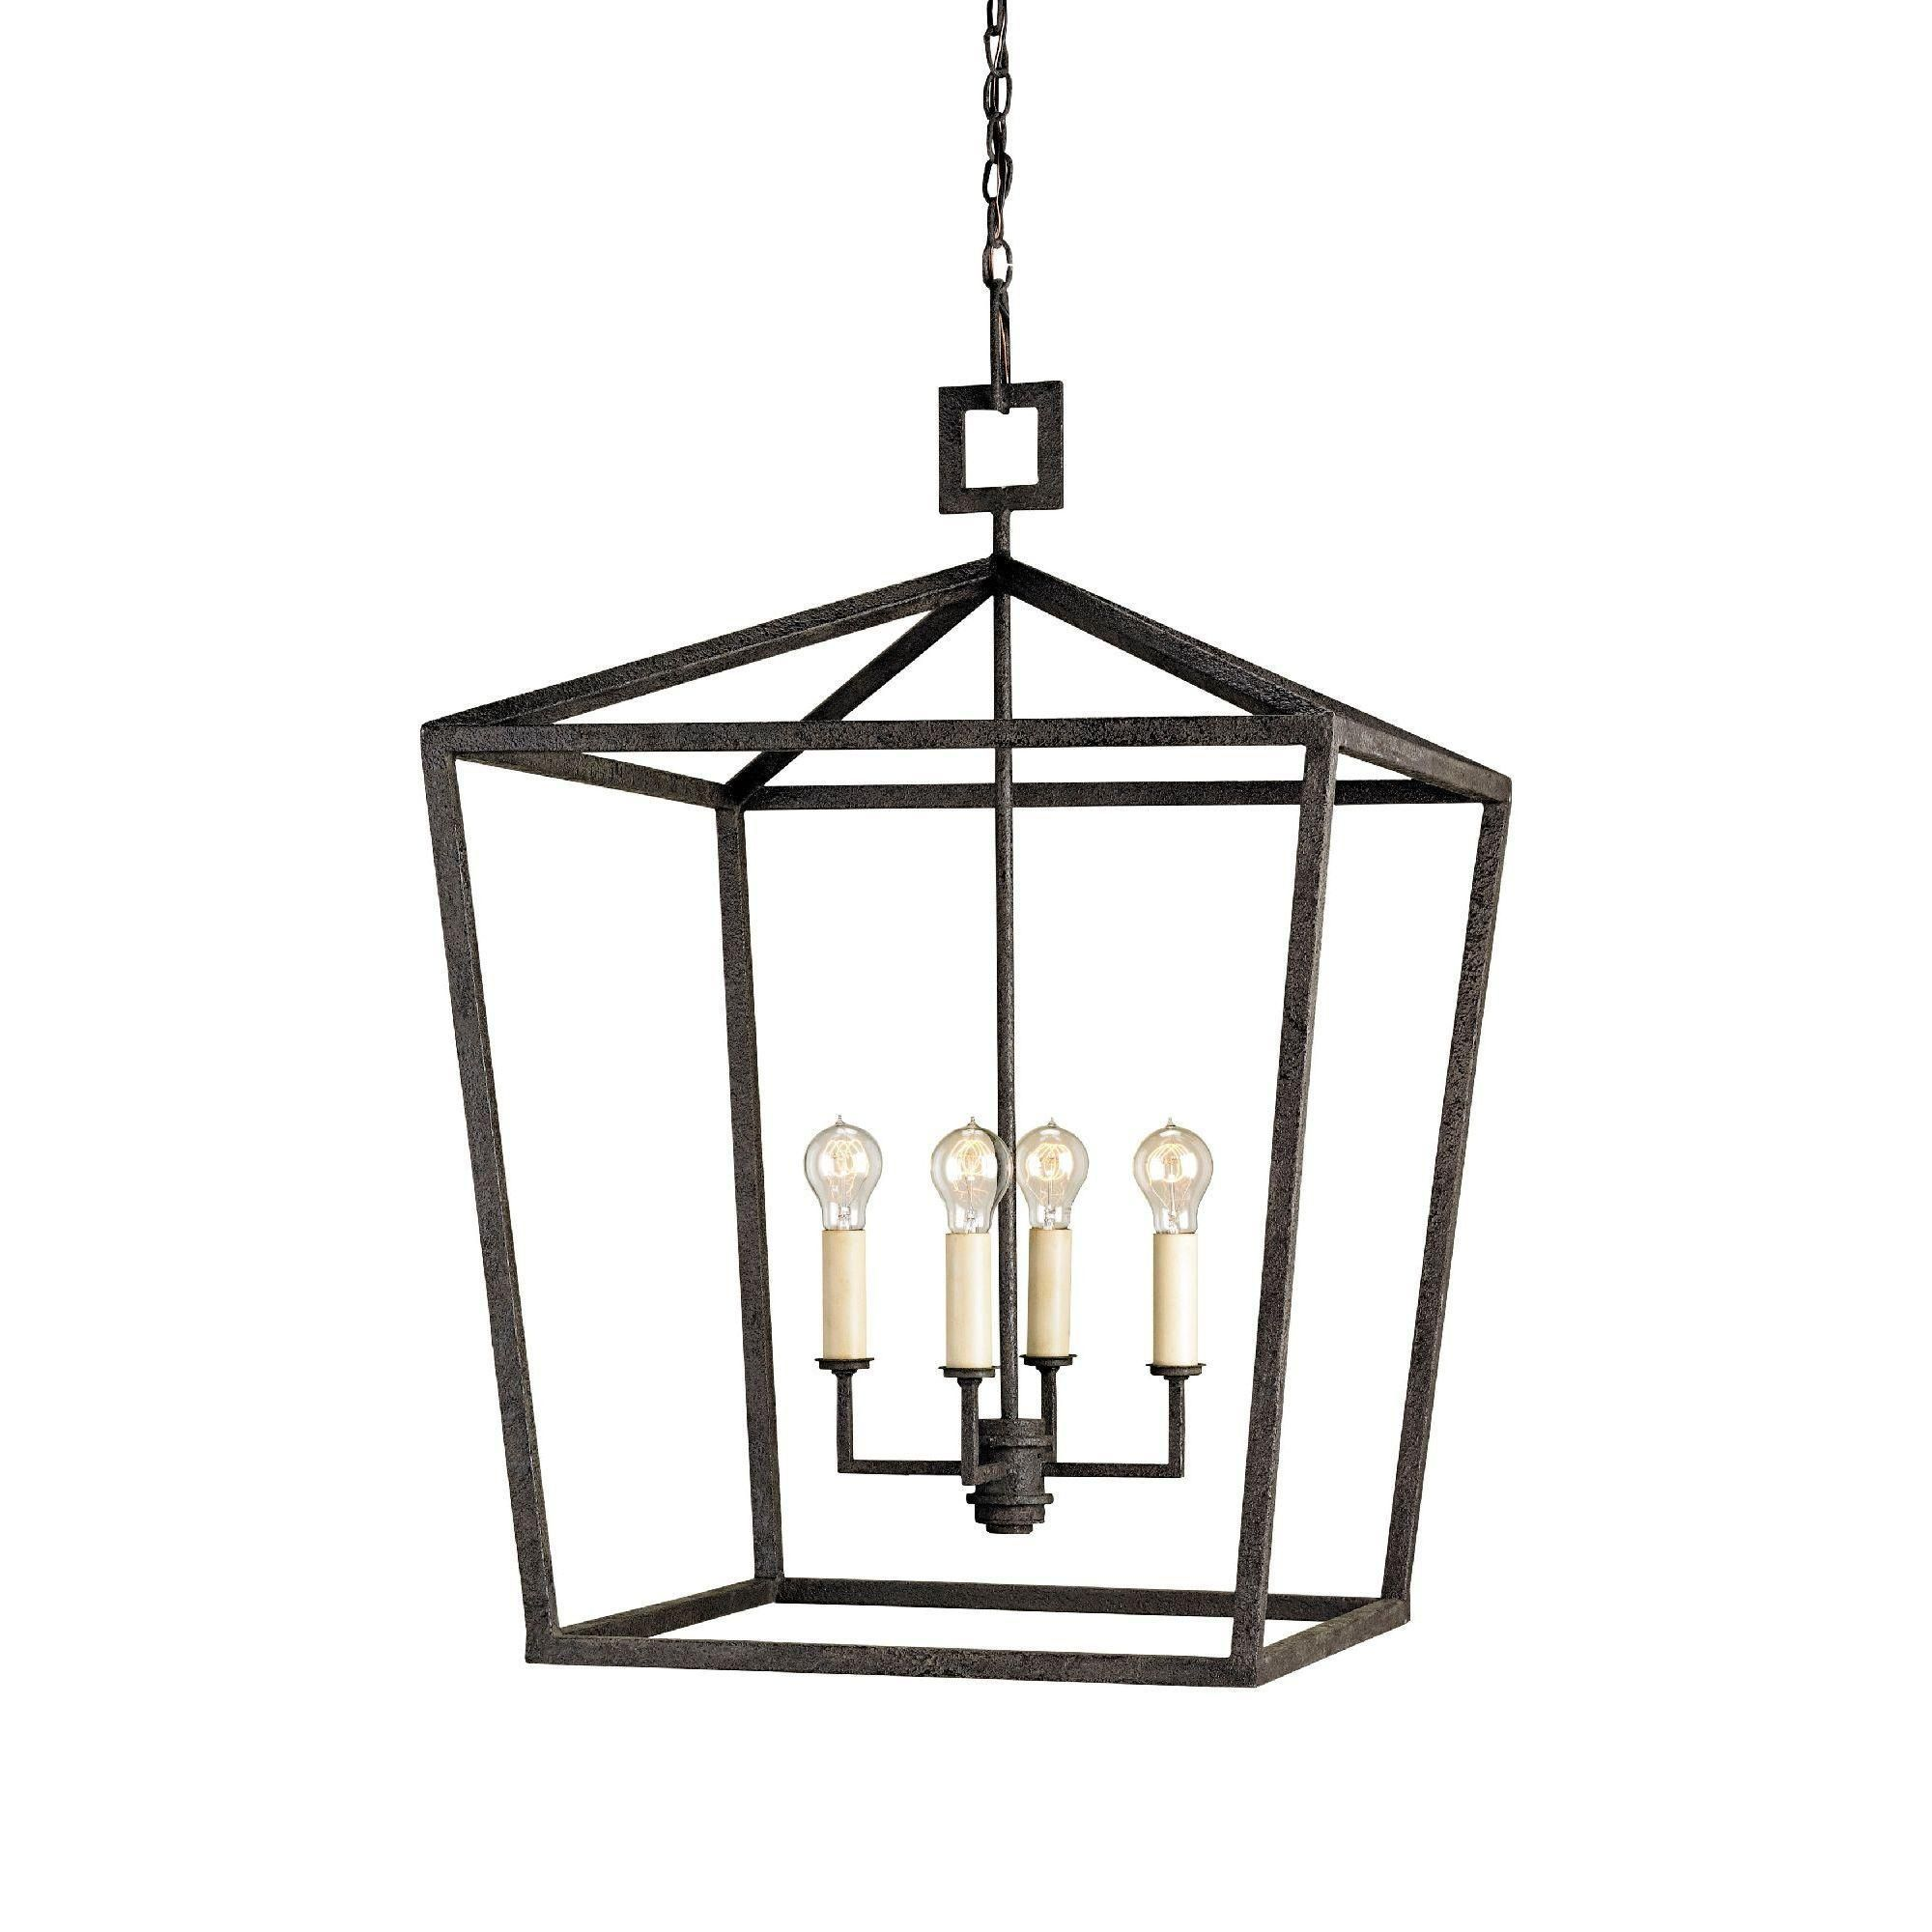 Currey & Co Denison Lantern Small Product ID Dimensions Sm